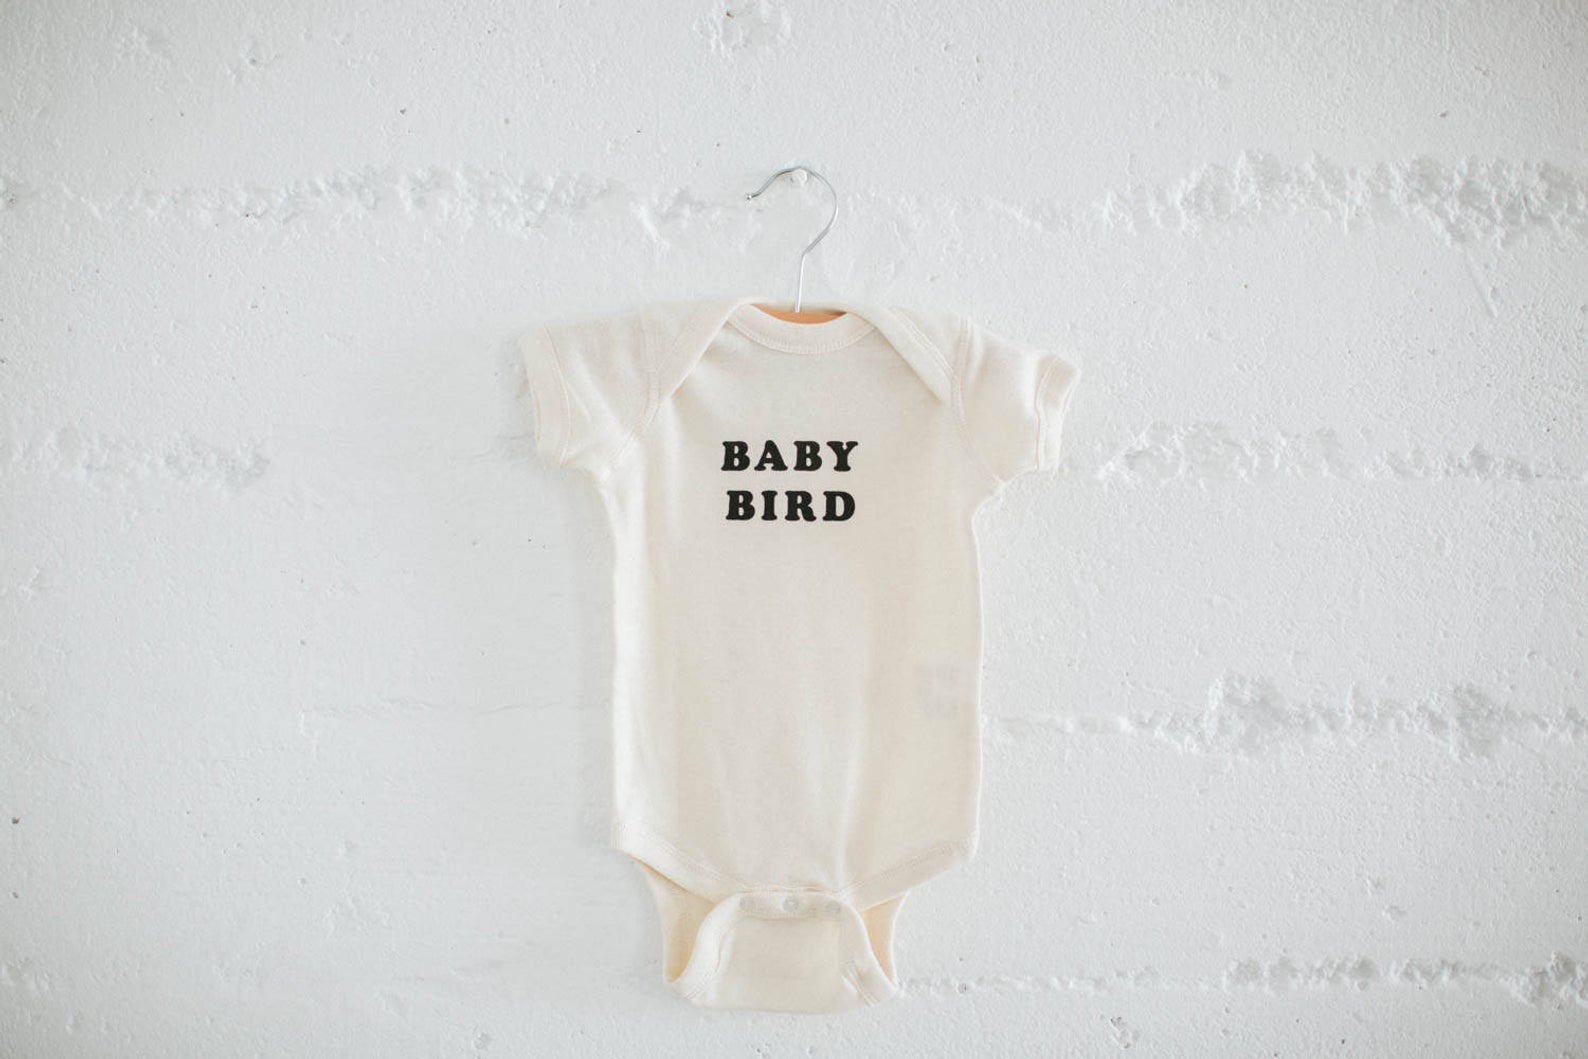 Baby Bird Infant's Bodysuit by The Bee & The Fox